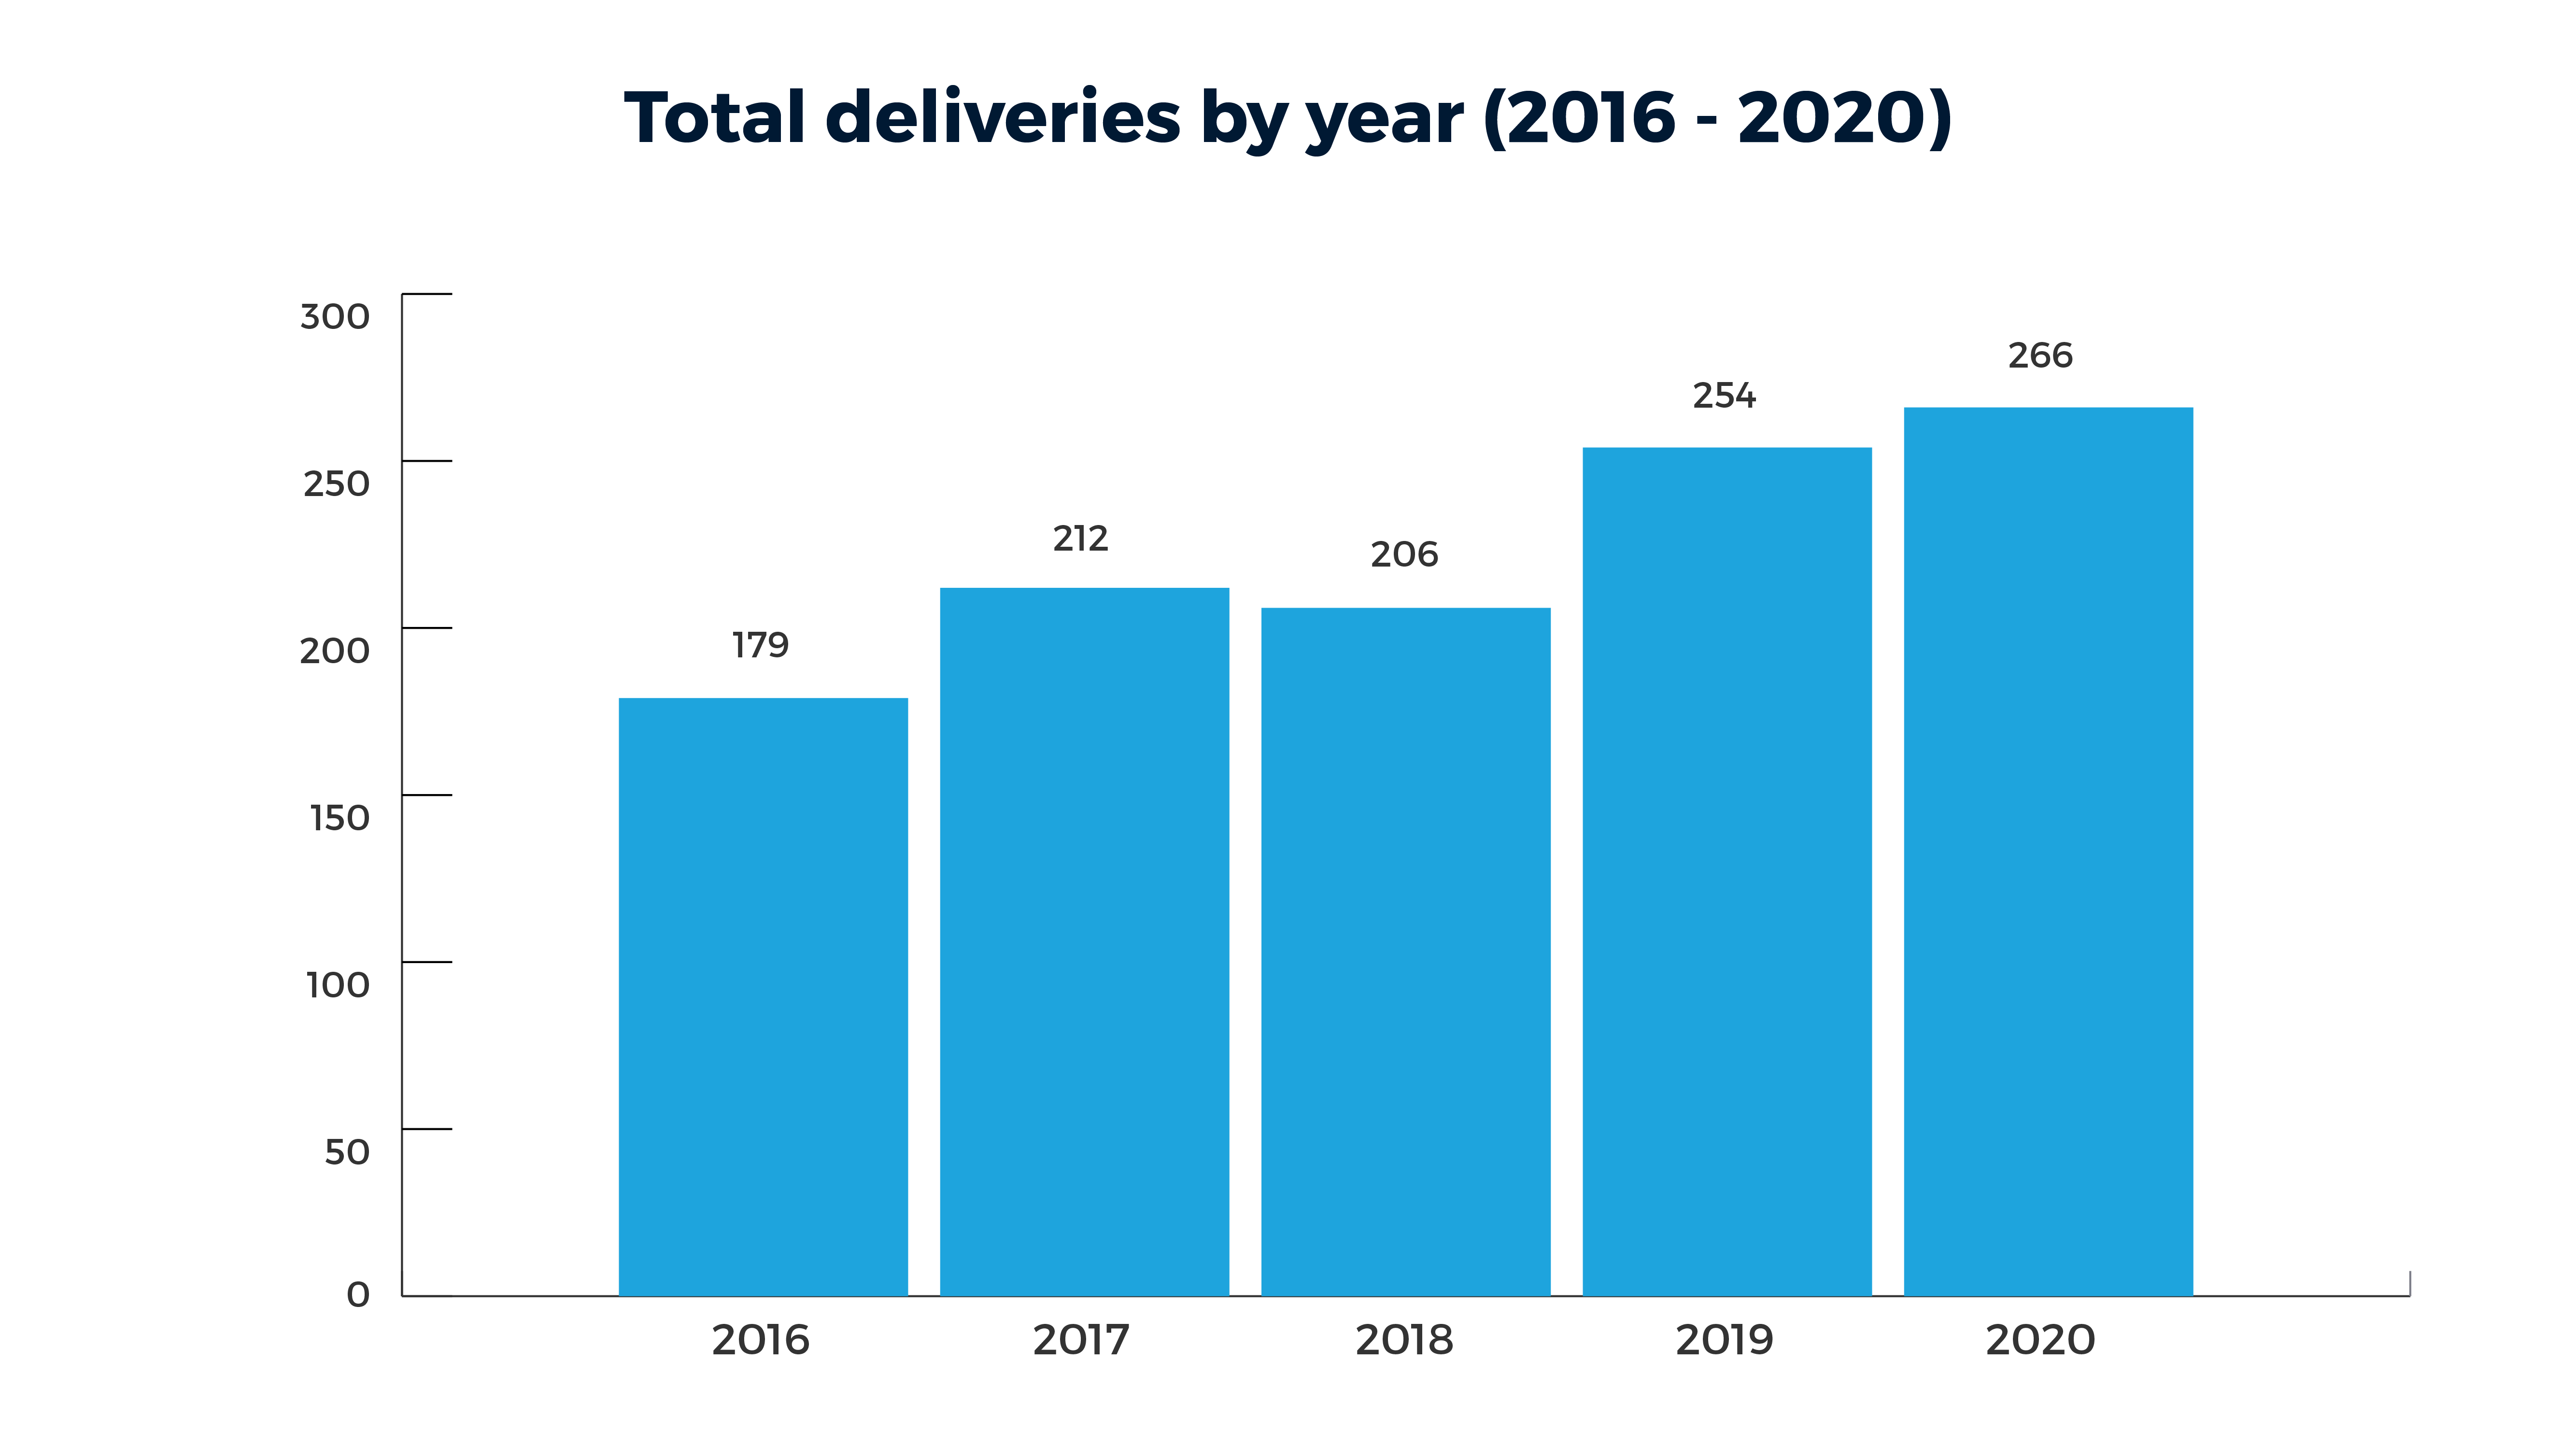 A bar graph of total deliveries by year at the Colorado Fetal Care Center from 2015 to 2019. 2015: 181; 2016: 179; 2017: 212; 2018: 206; 2019: 258